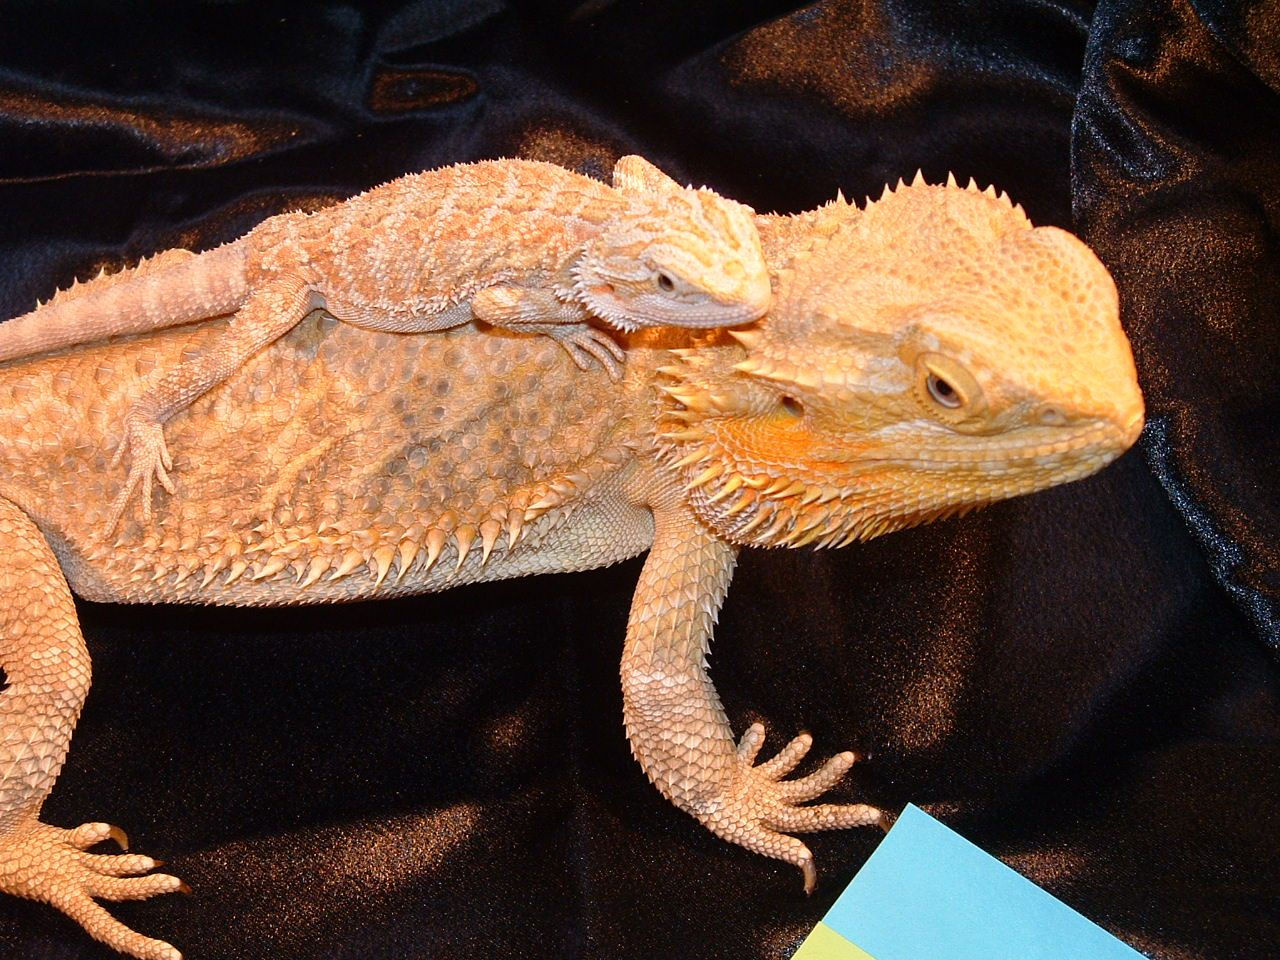 Bearded Dragons Screen Saver 1 0 Free Download Bearded Dragon Bearded Dragon Care Reptile Room